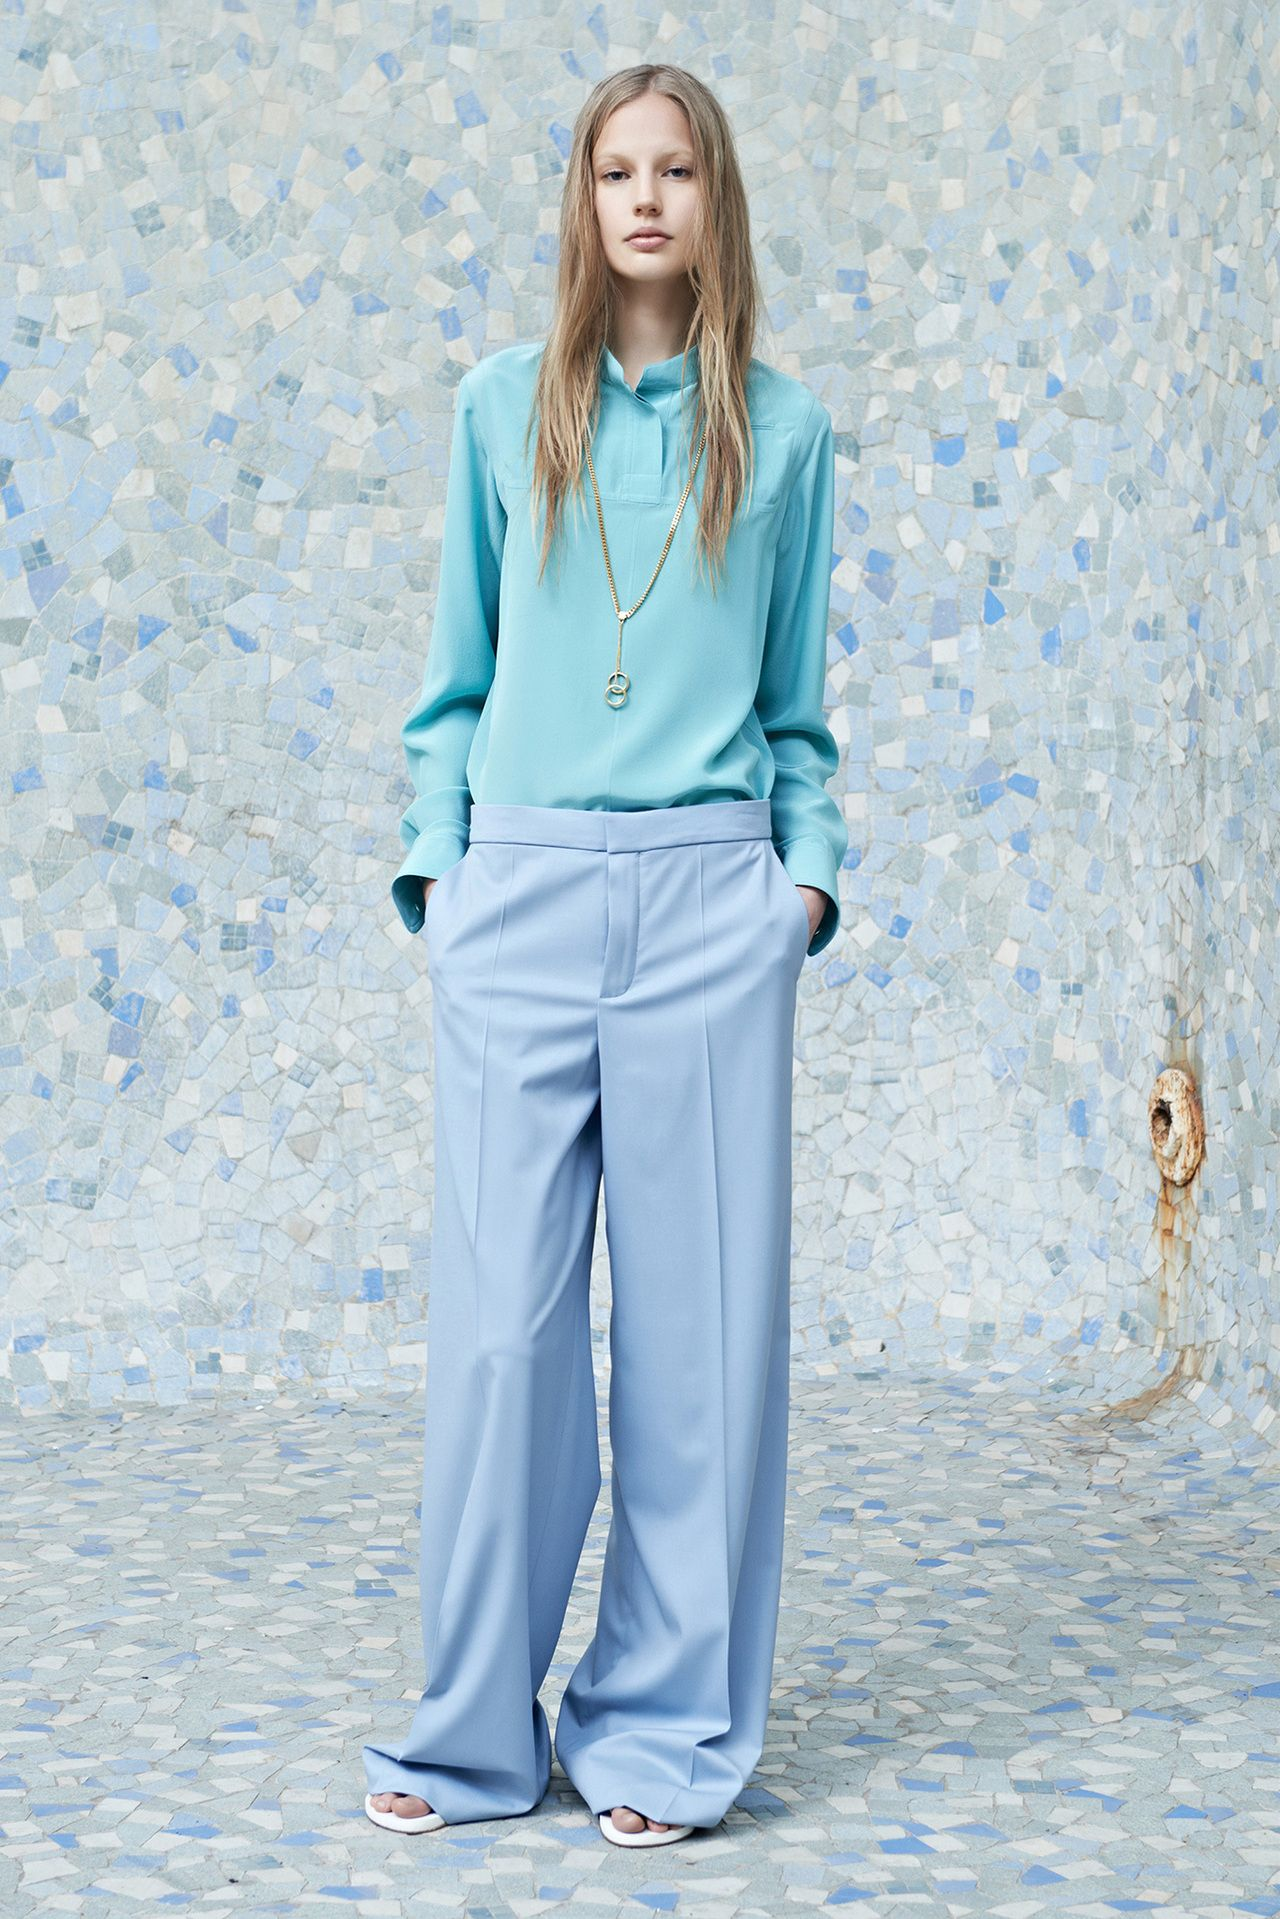 Why Are Runway Clothes So Weird: Fashion, Editorial Fashion, Review Fashion